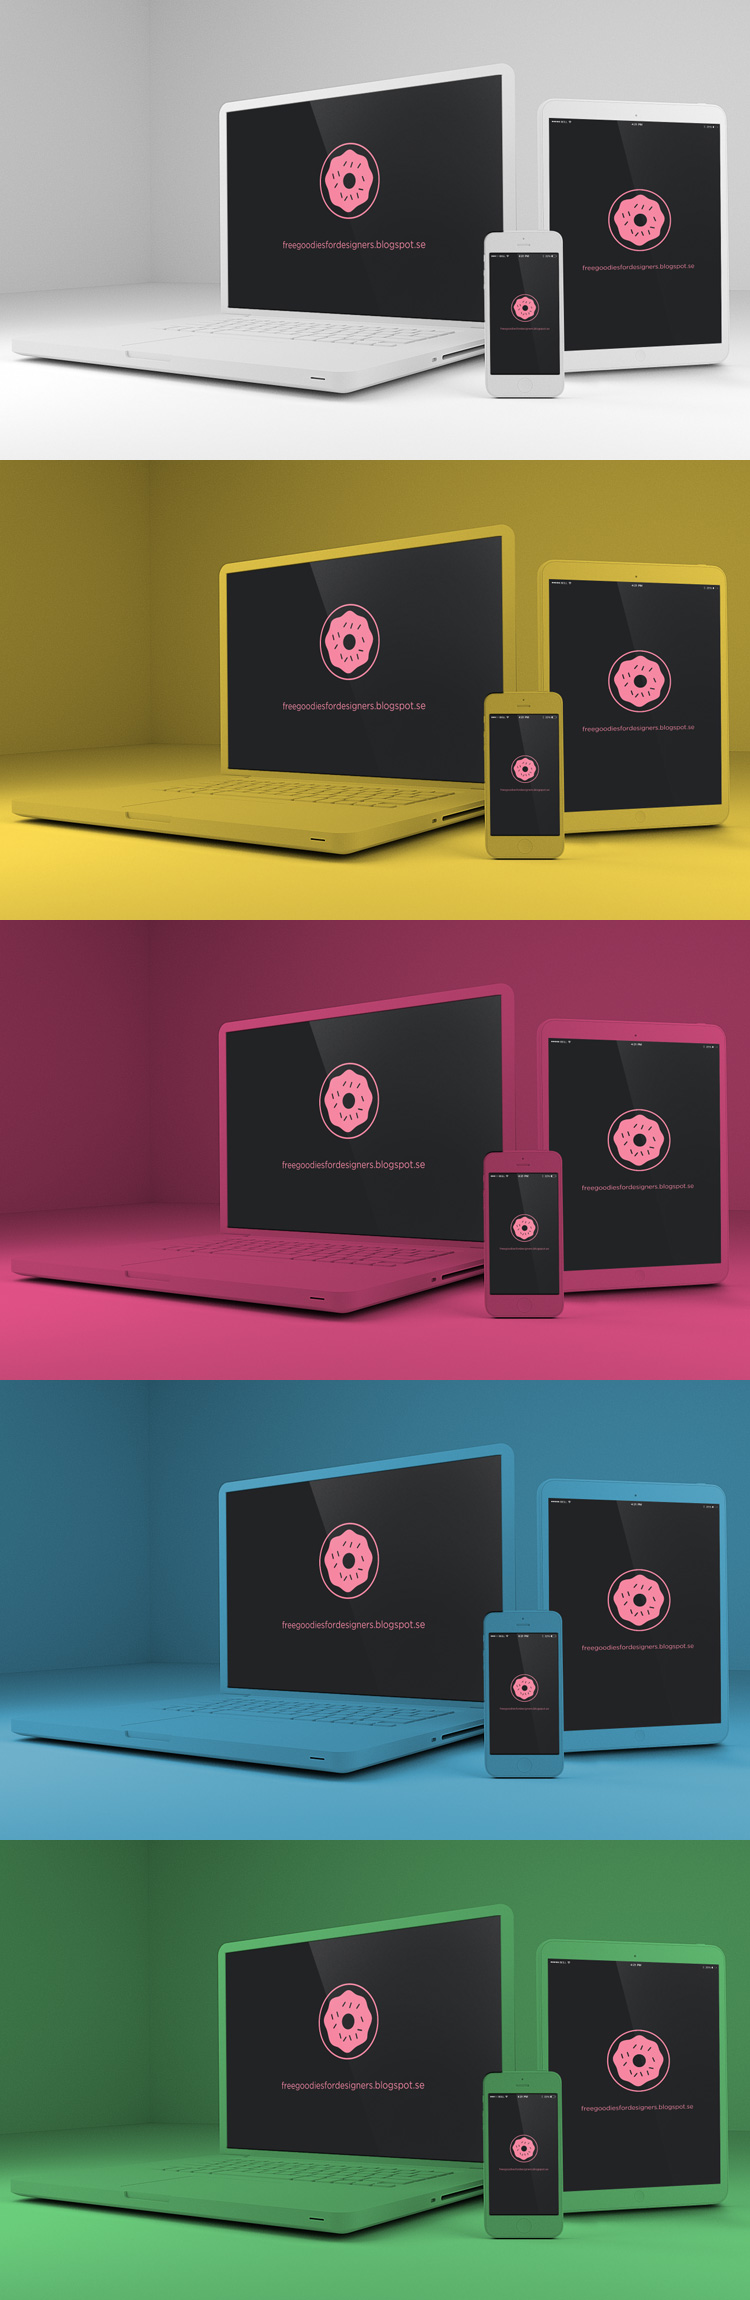 FREE devices super nice mock up in photoshop with 6 different colours white, black, orange, pink, blue and green. Everything separated in layers all the screens with simple shape layer edit format. Download Here: http://freegoodiesfordesigners.blogspot.se/2014/07/free-psd-devices-mock-up-multicolor.html  #freebie #freepsd #freegoodies #freemockup #mockup #iphone #macbook